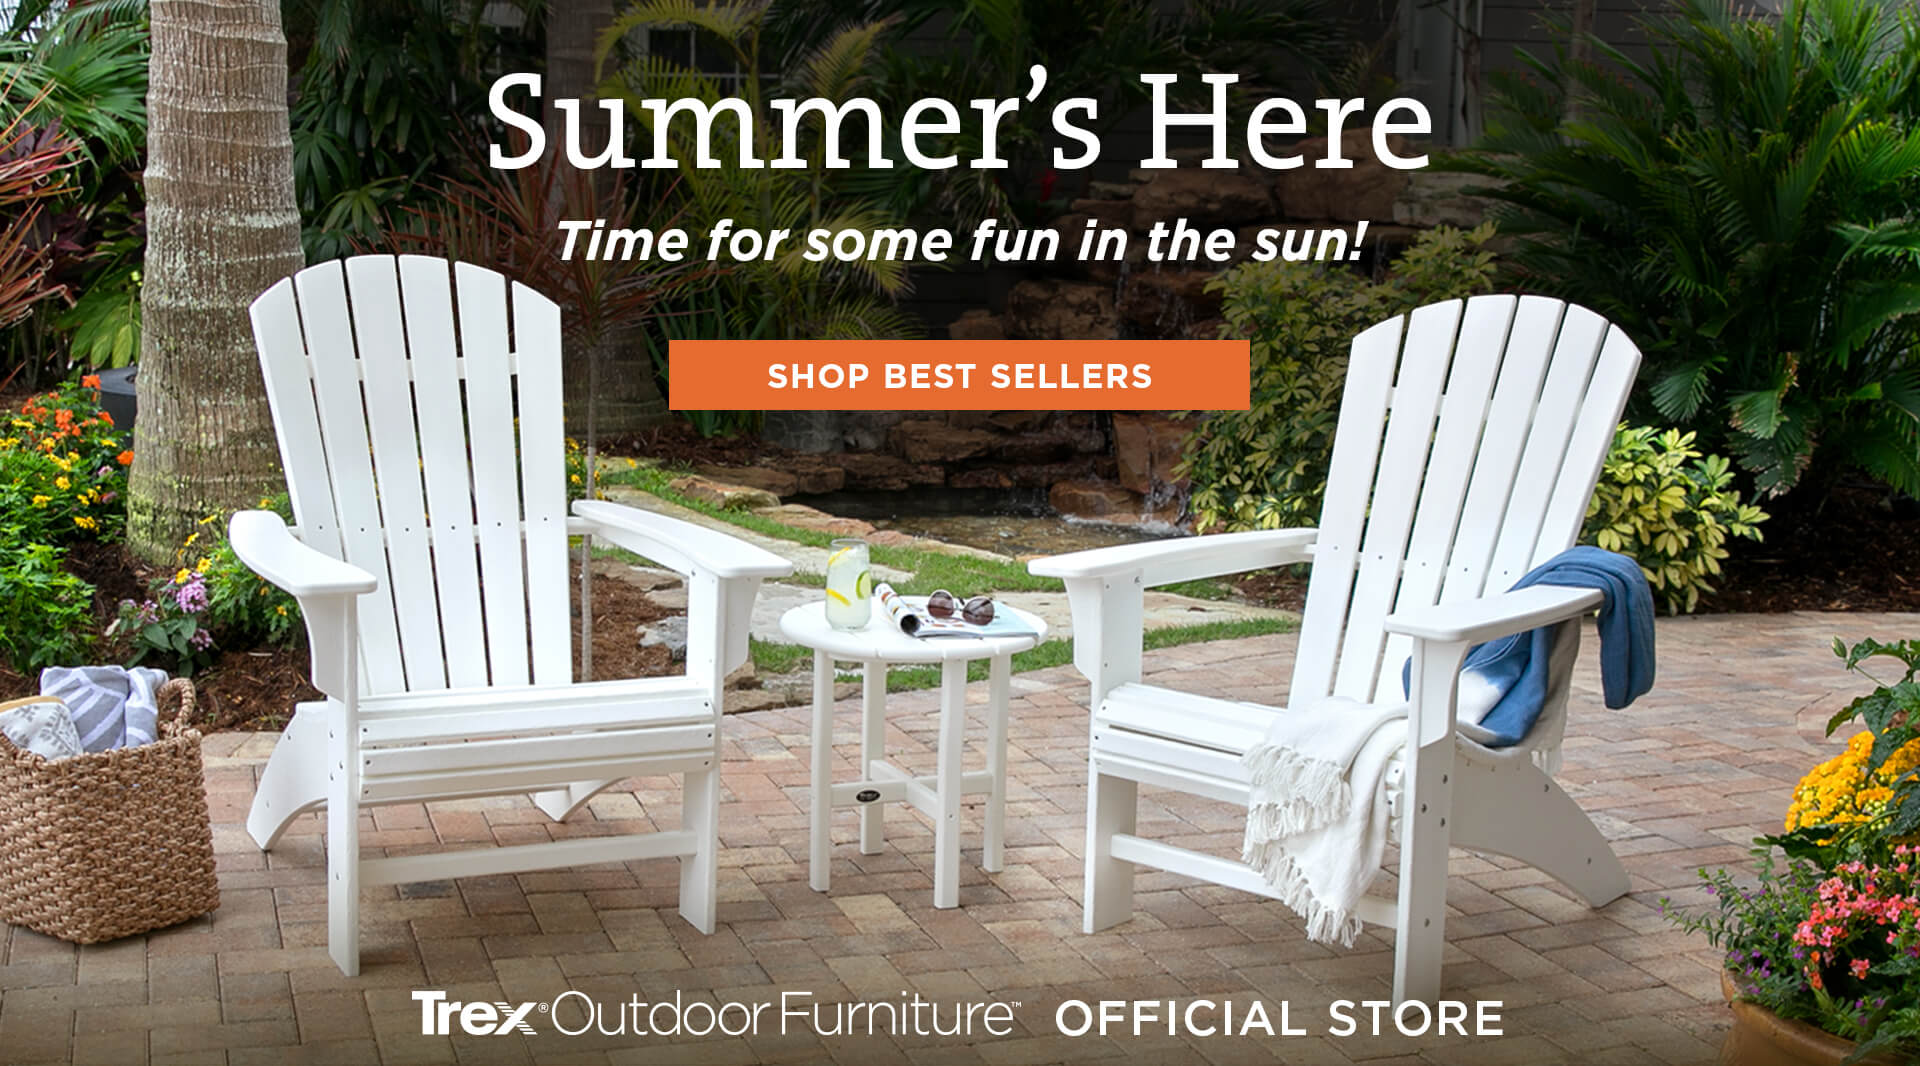 Summer's Here - Shop Best Sellers